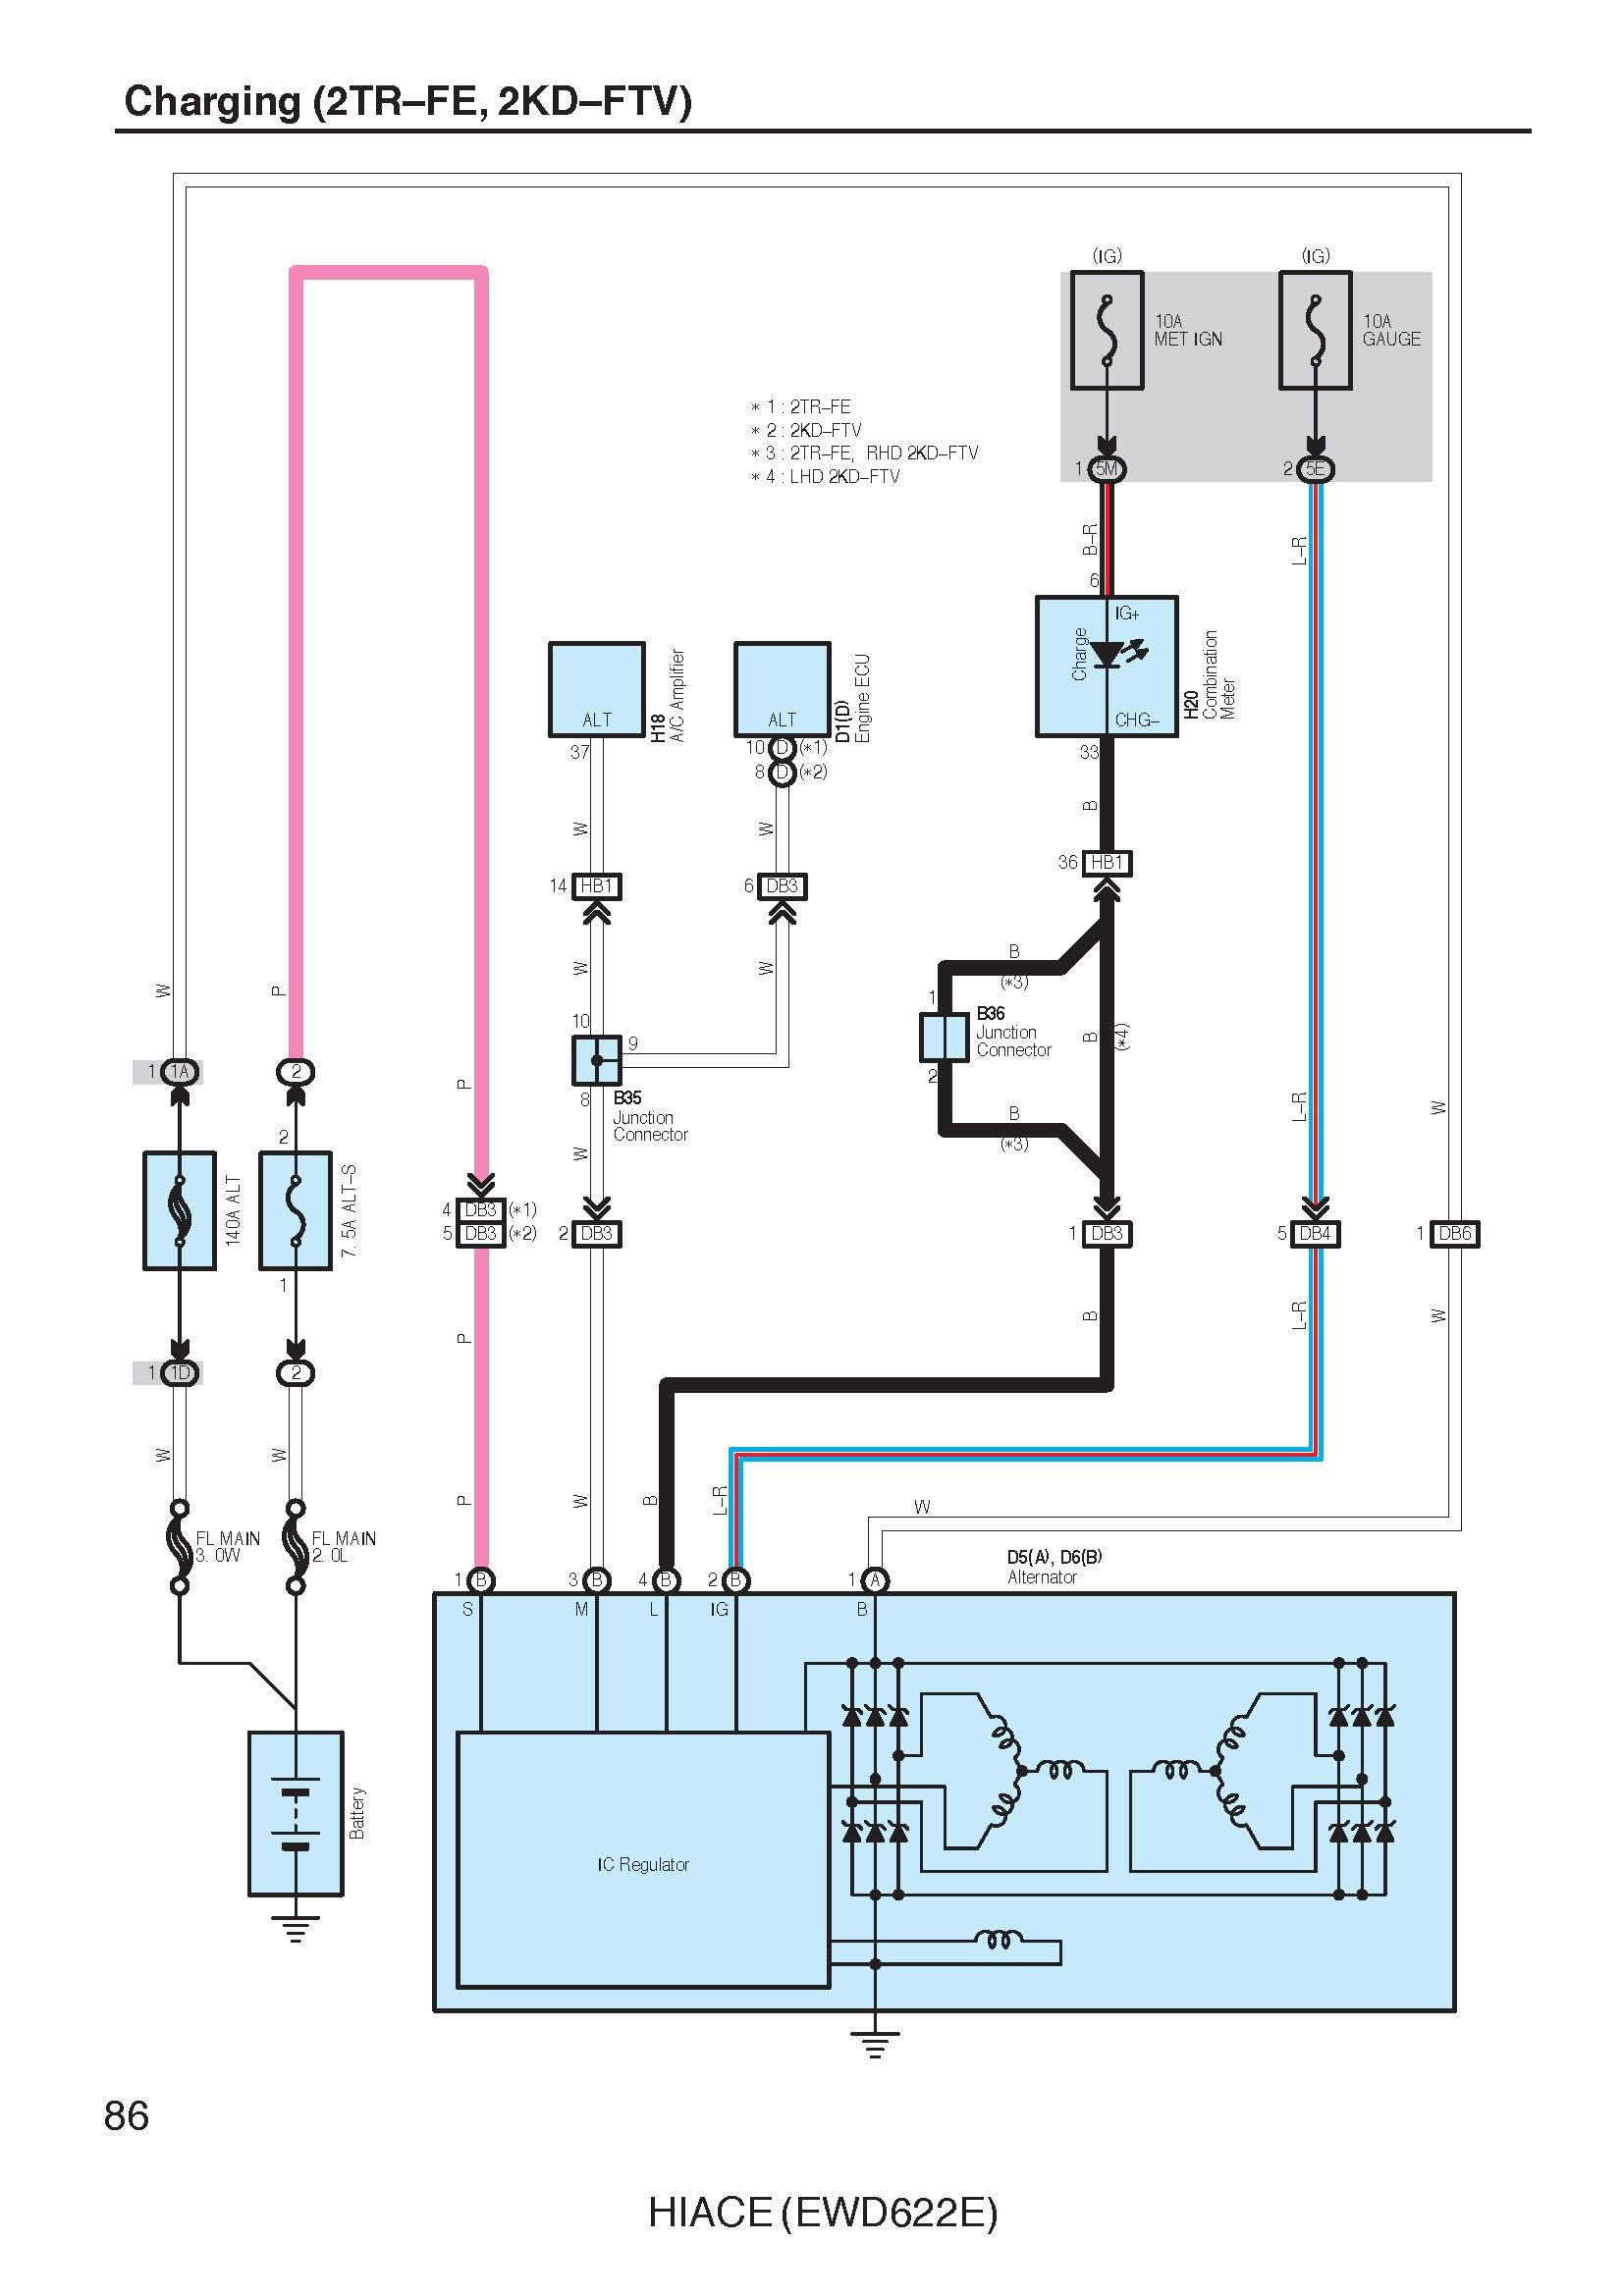 system wiring diagrams toyota 1990 ford super duty 2006 hiace original and coloured electrical diagram pdf this manual is used